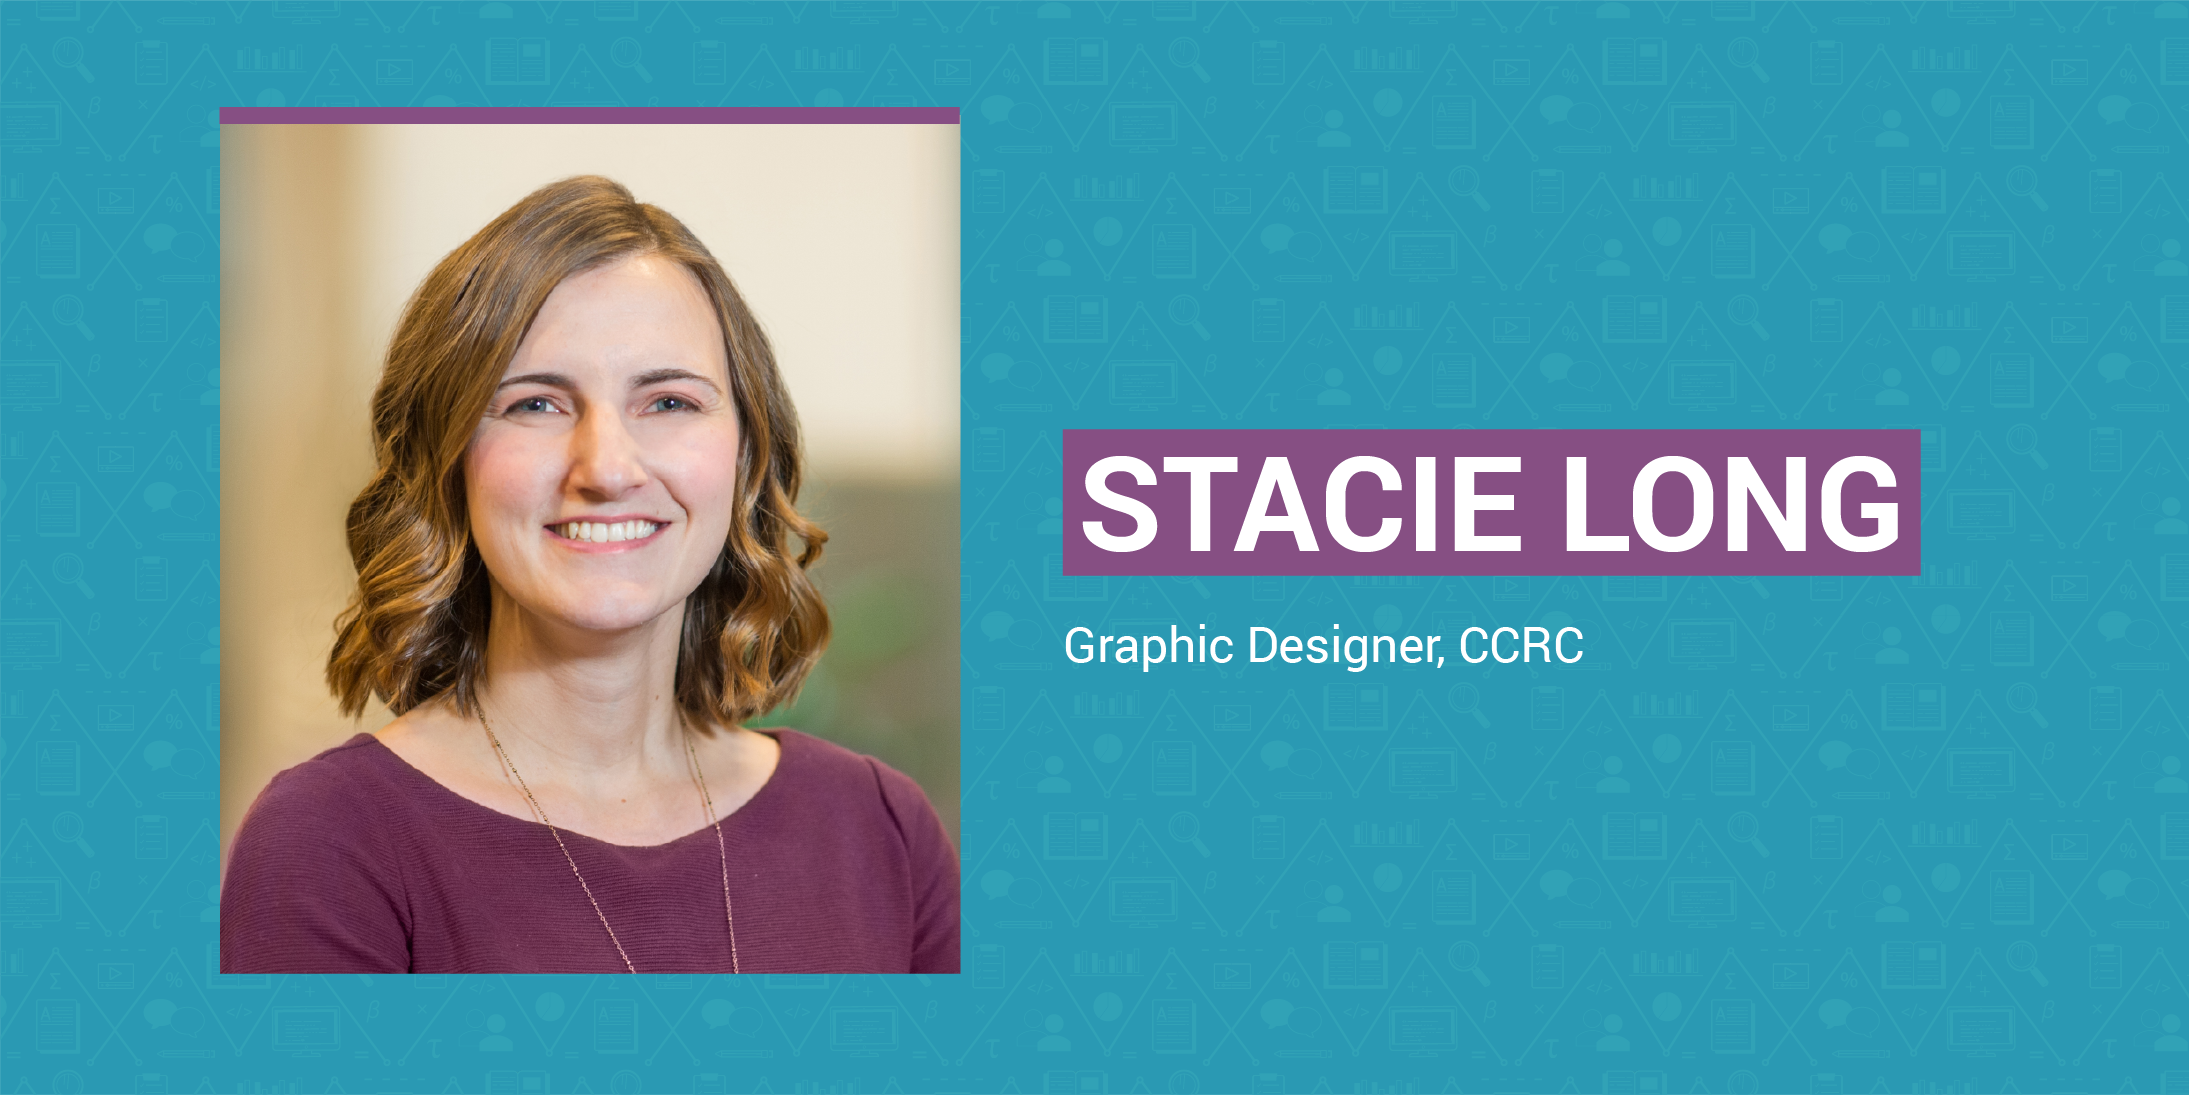 Stacie Long's headshot on a blue and purple background